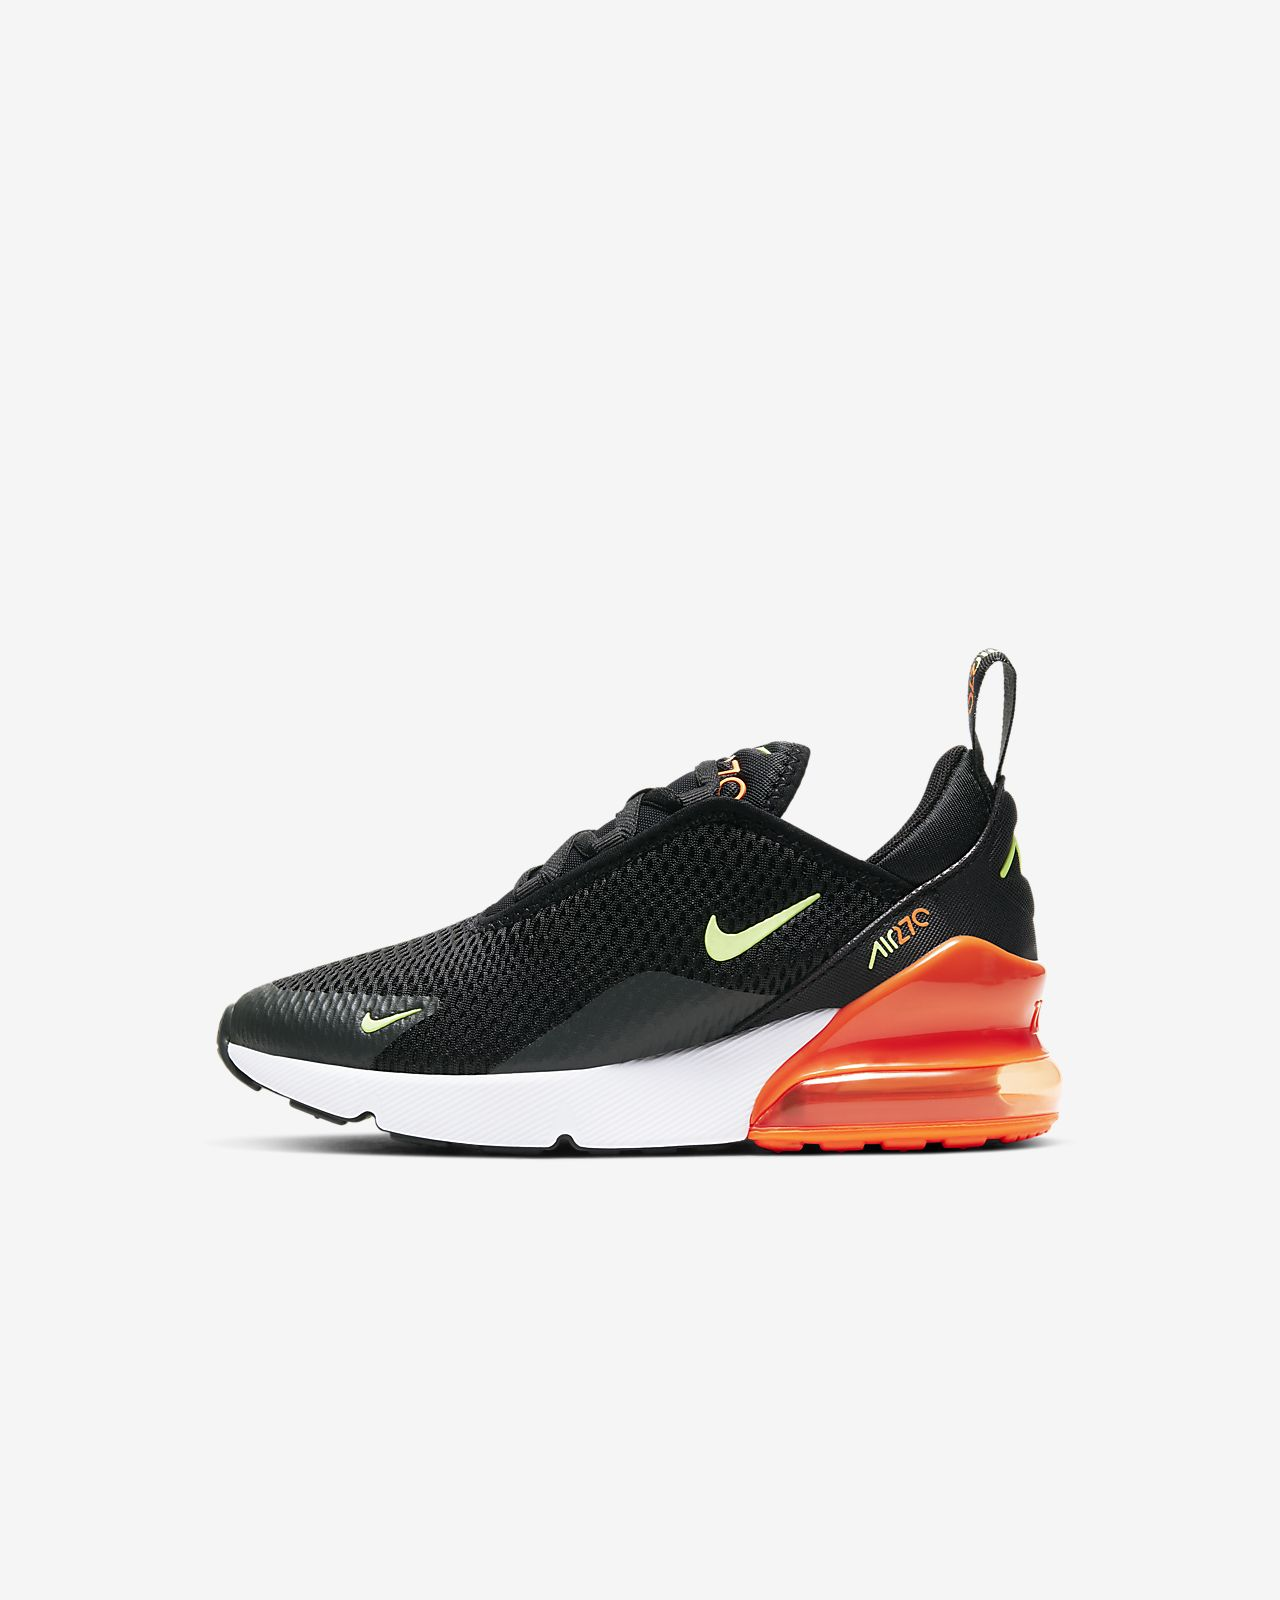 LinkInspired by the Air Max 93 and Air Max 180, the upcoming